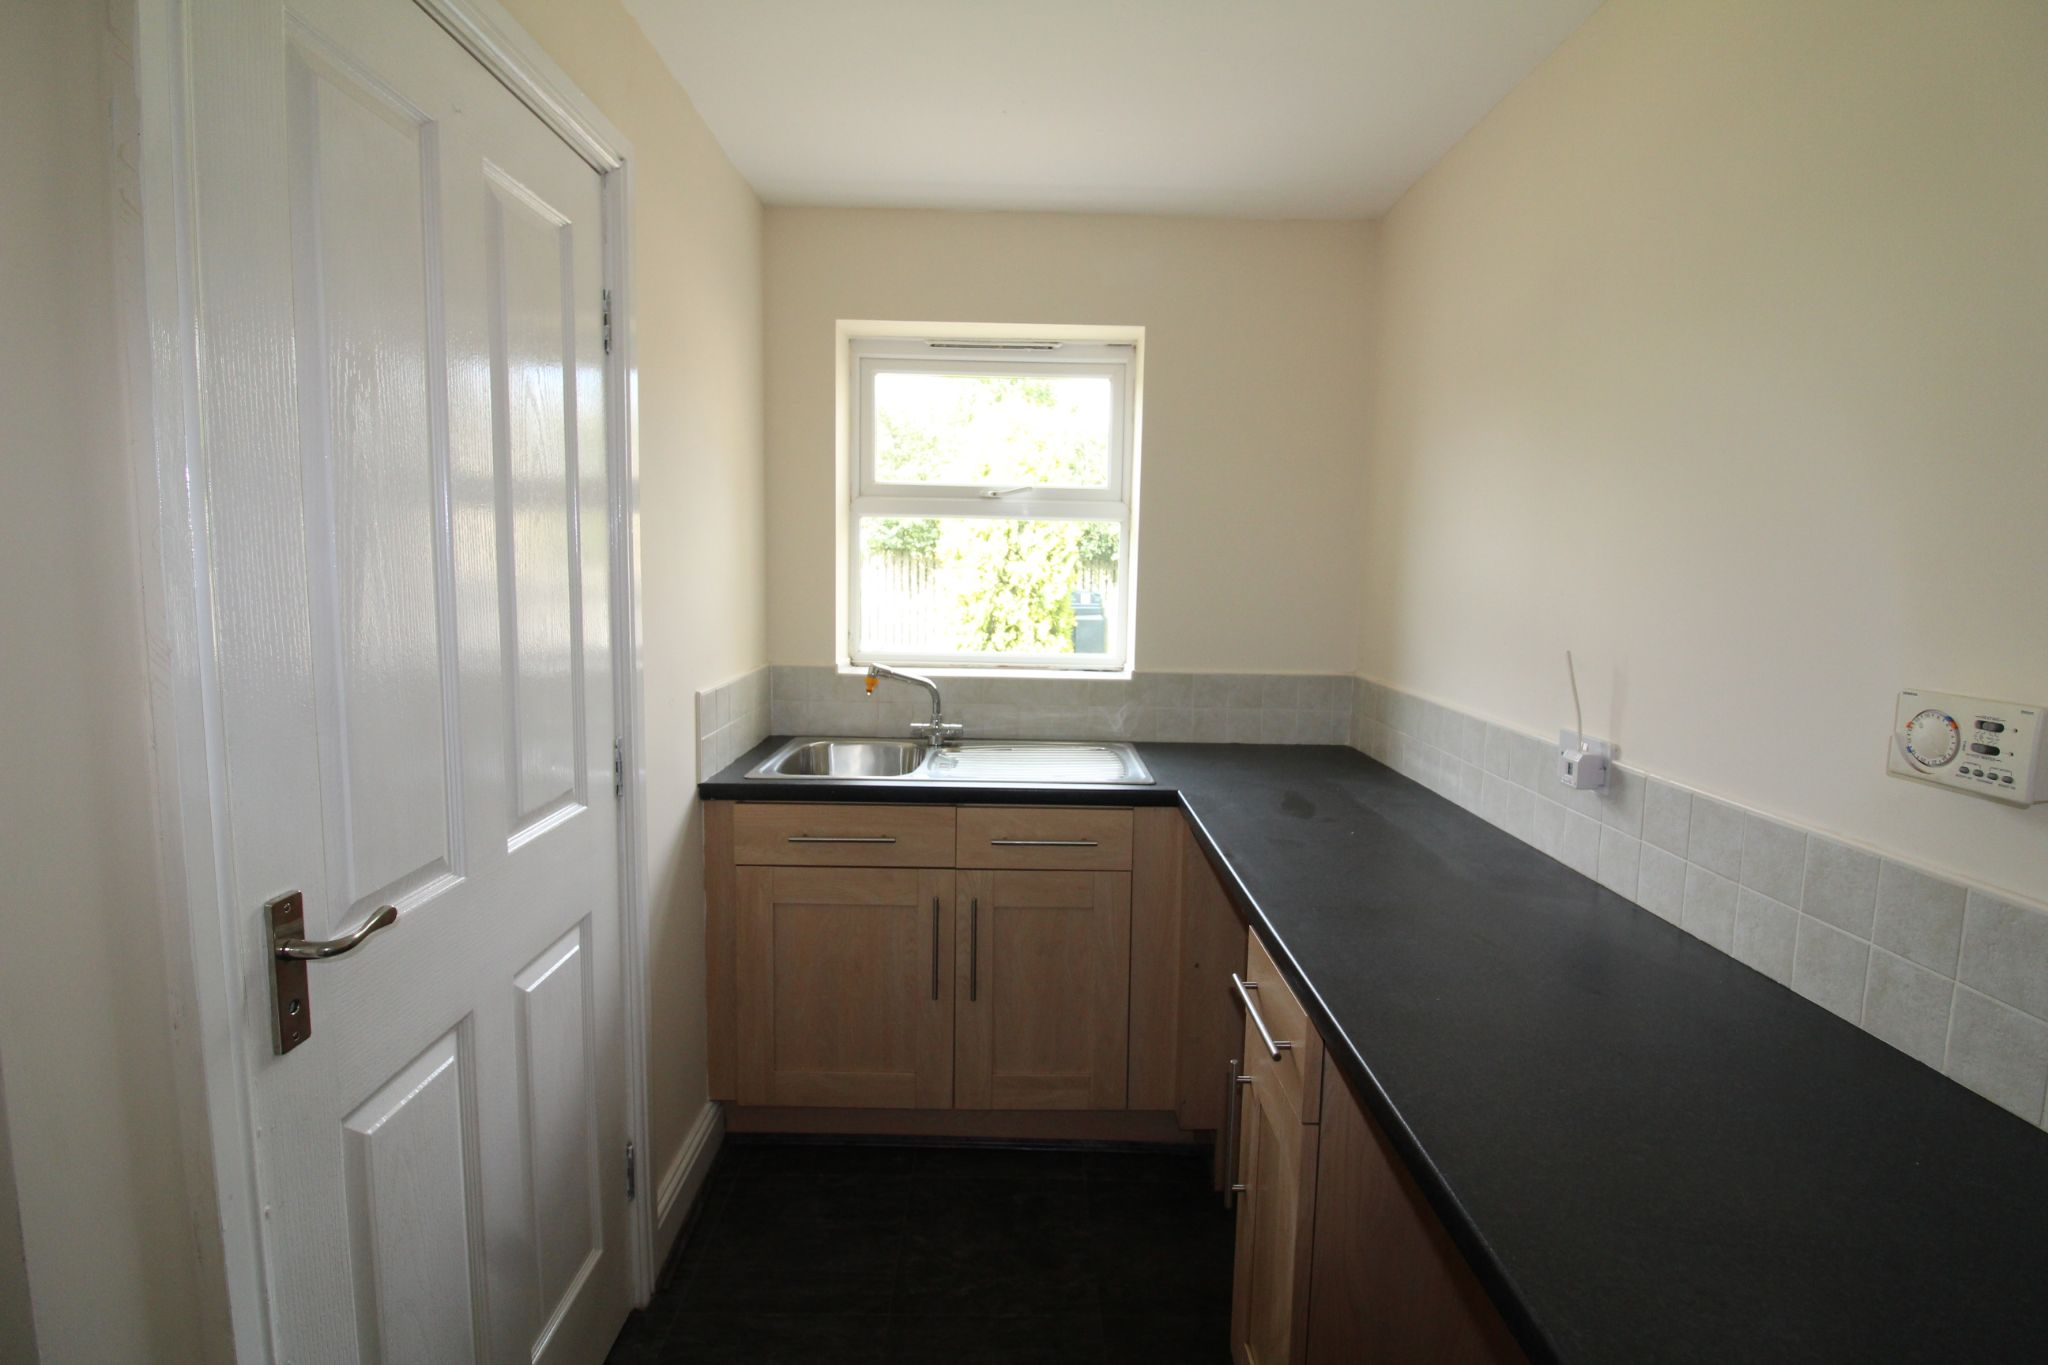 7 bedroom detached house Sale Agreed in Sunniside - Utility Room.